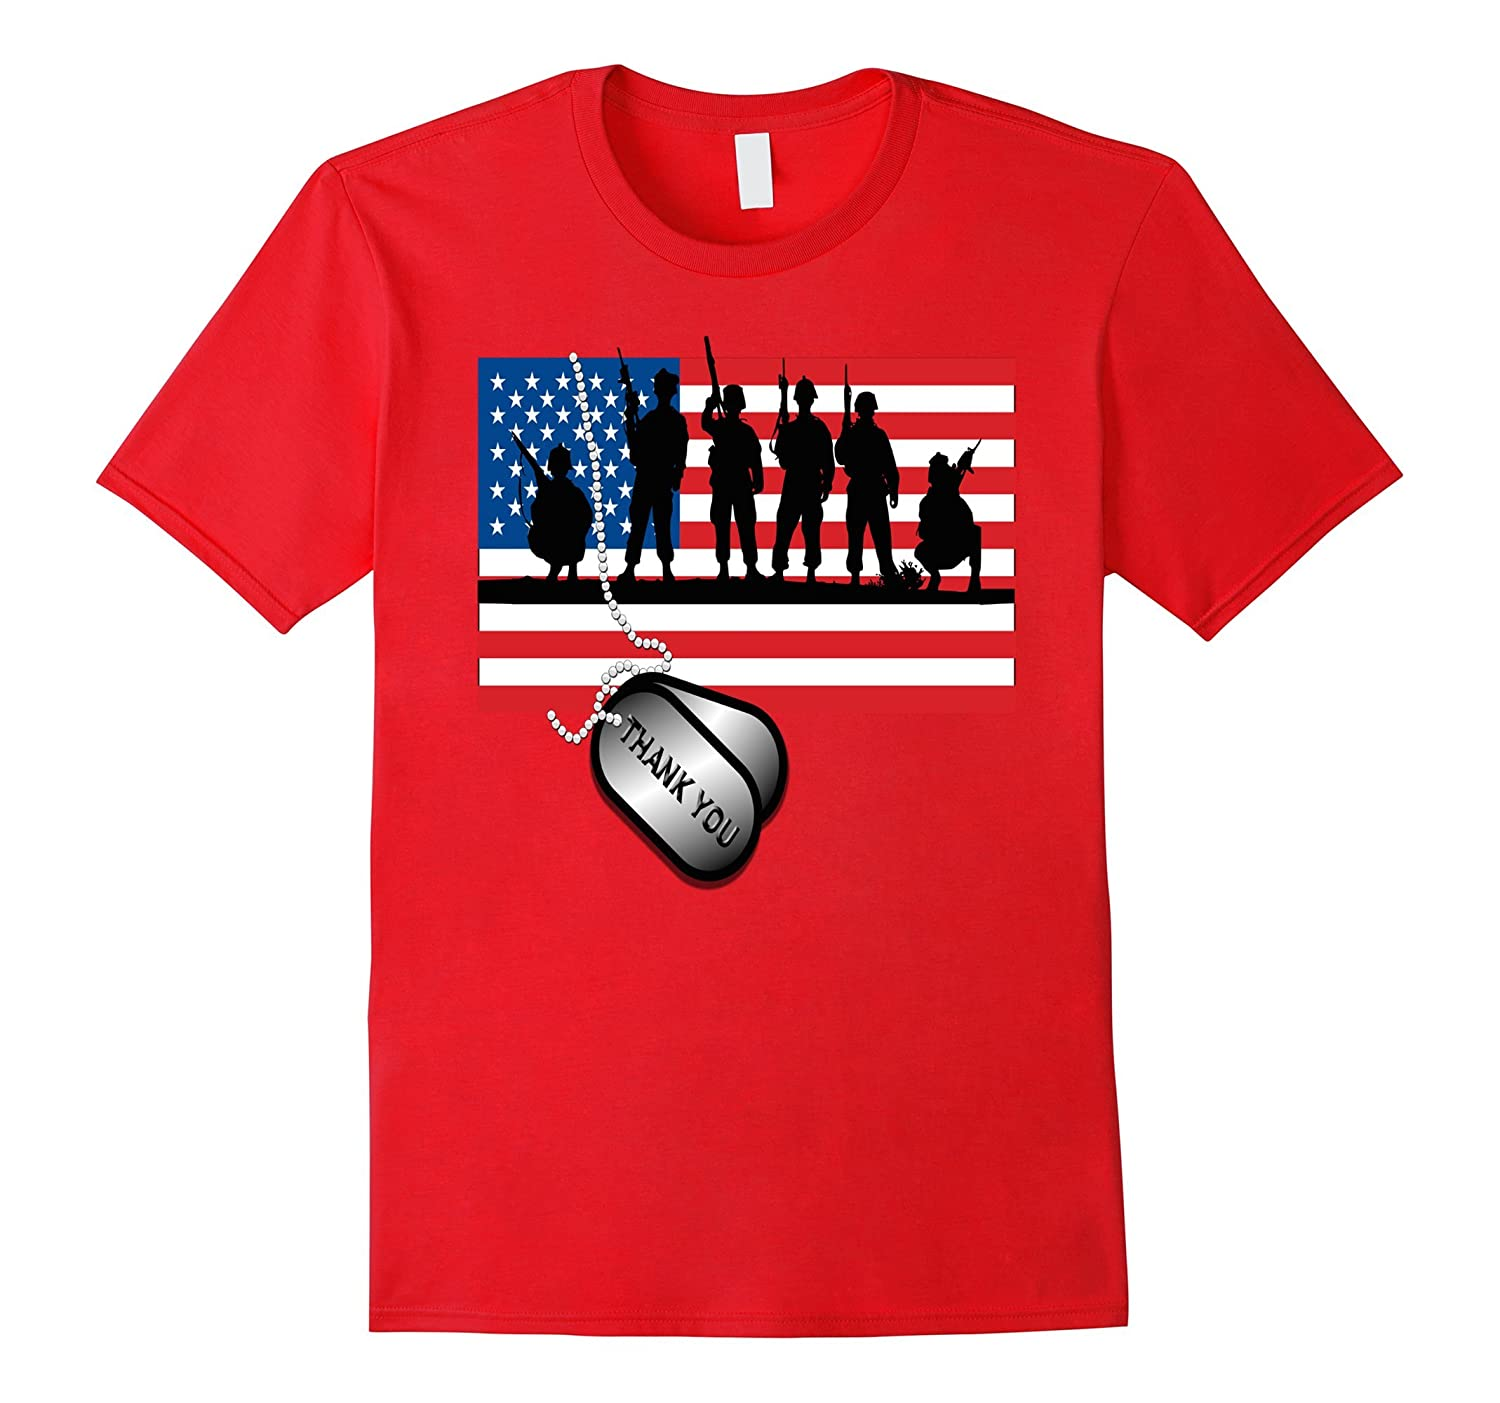 USA Soldier Patriotic American Flag Memorial Day T-Shirt-PL